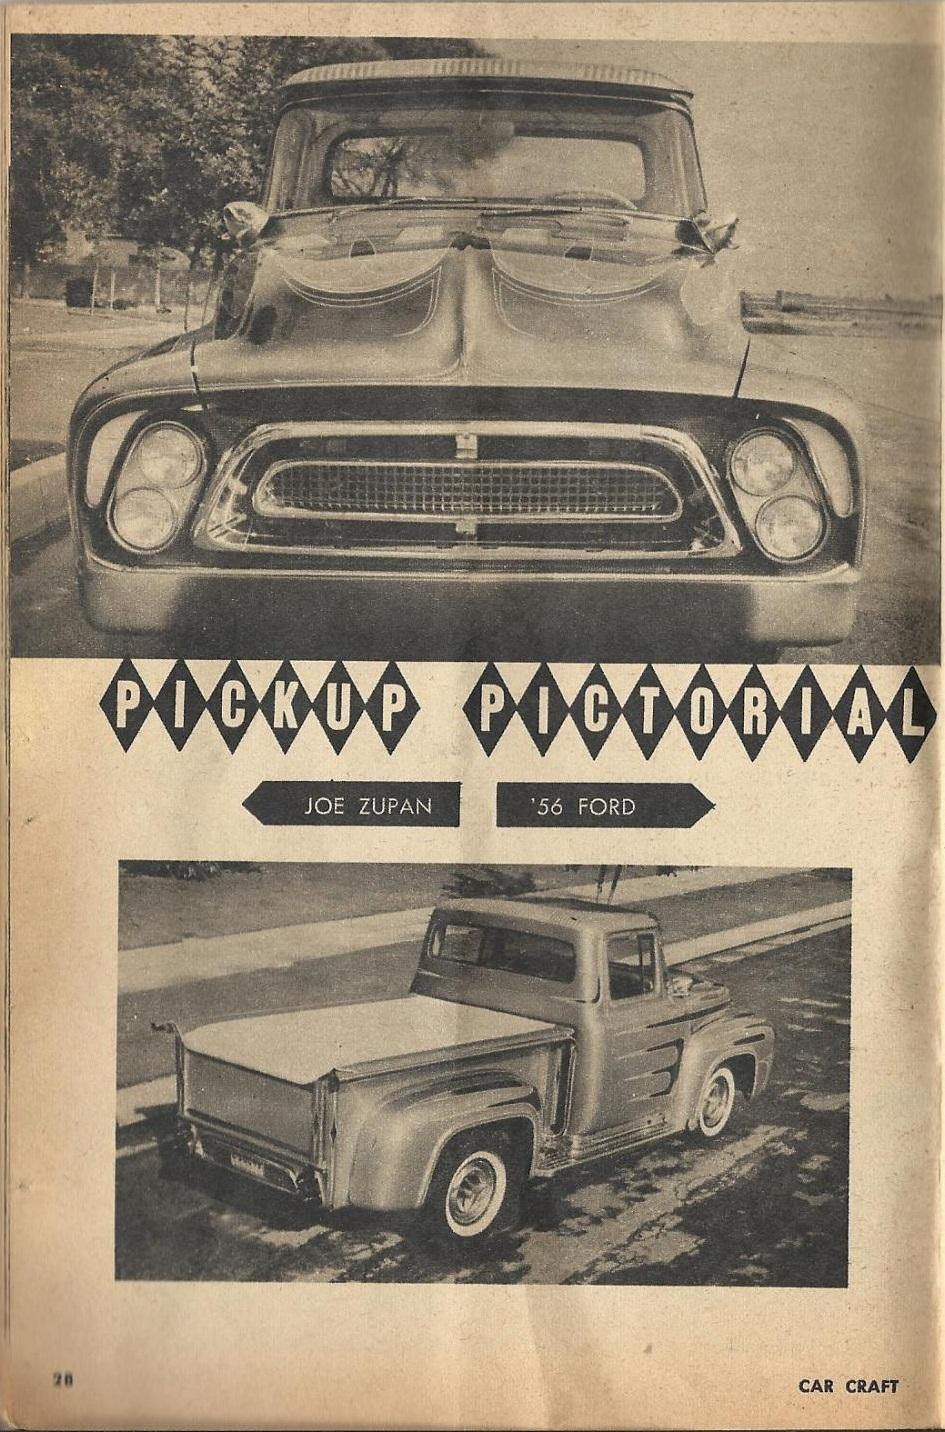 Car Craft - Special Pick Up June 1959 - Pick up Pictorial 2815